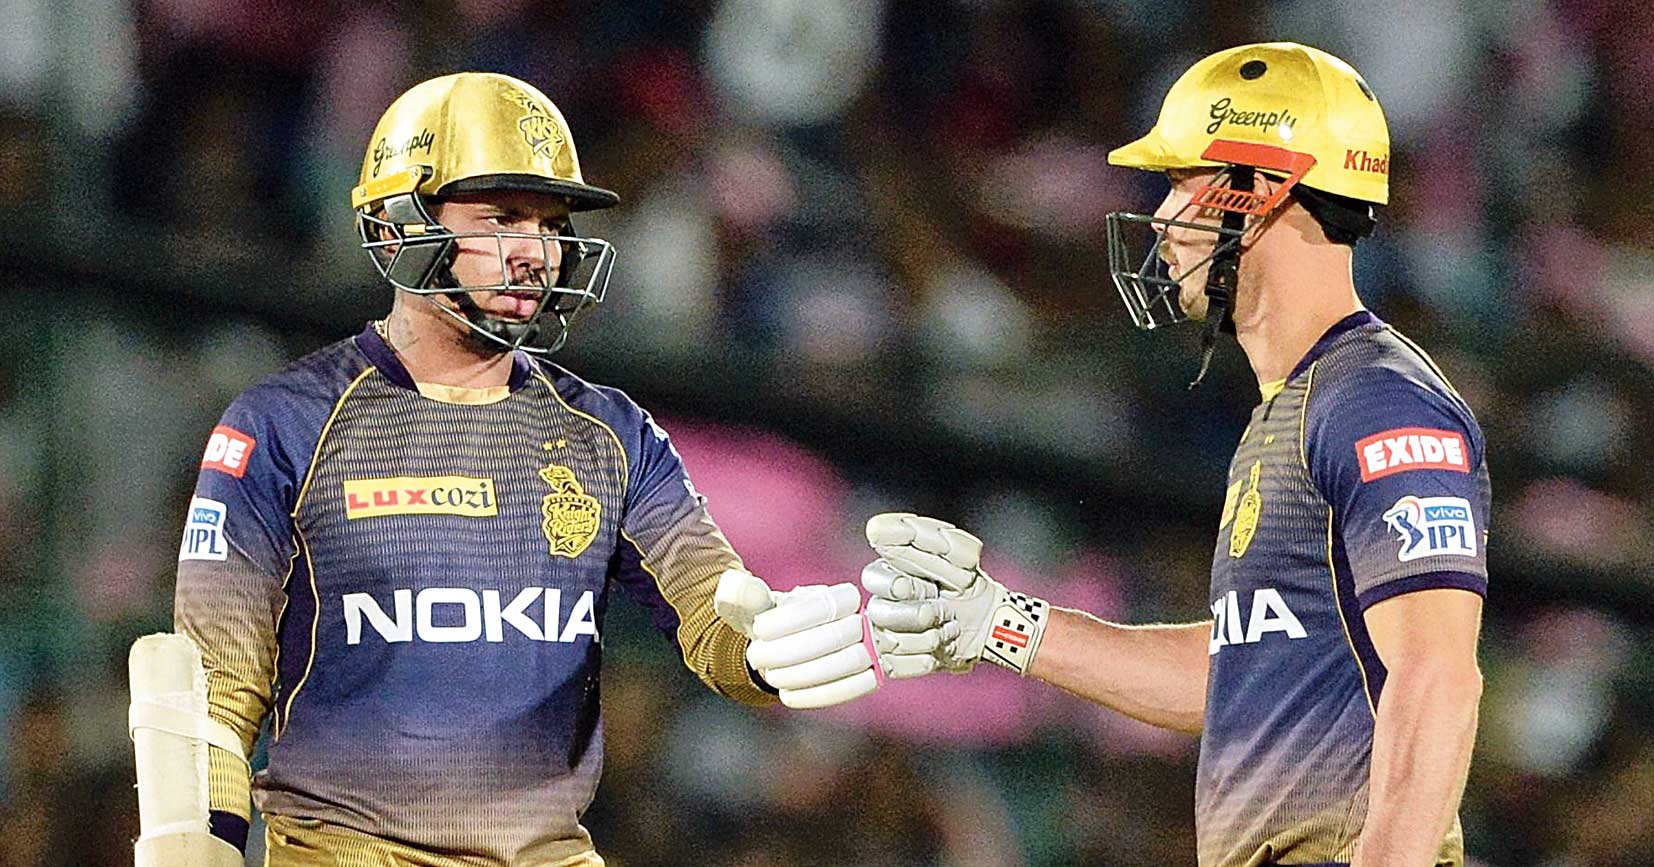 Sunil Narine (left) and Chris Lynn during their 91-run opening stand against Rajasthan Royals in Jaipur on Sunday.